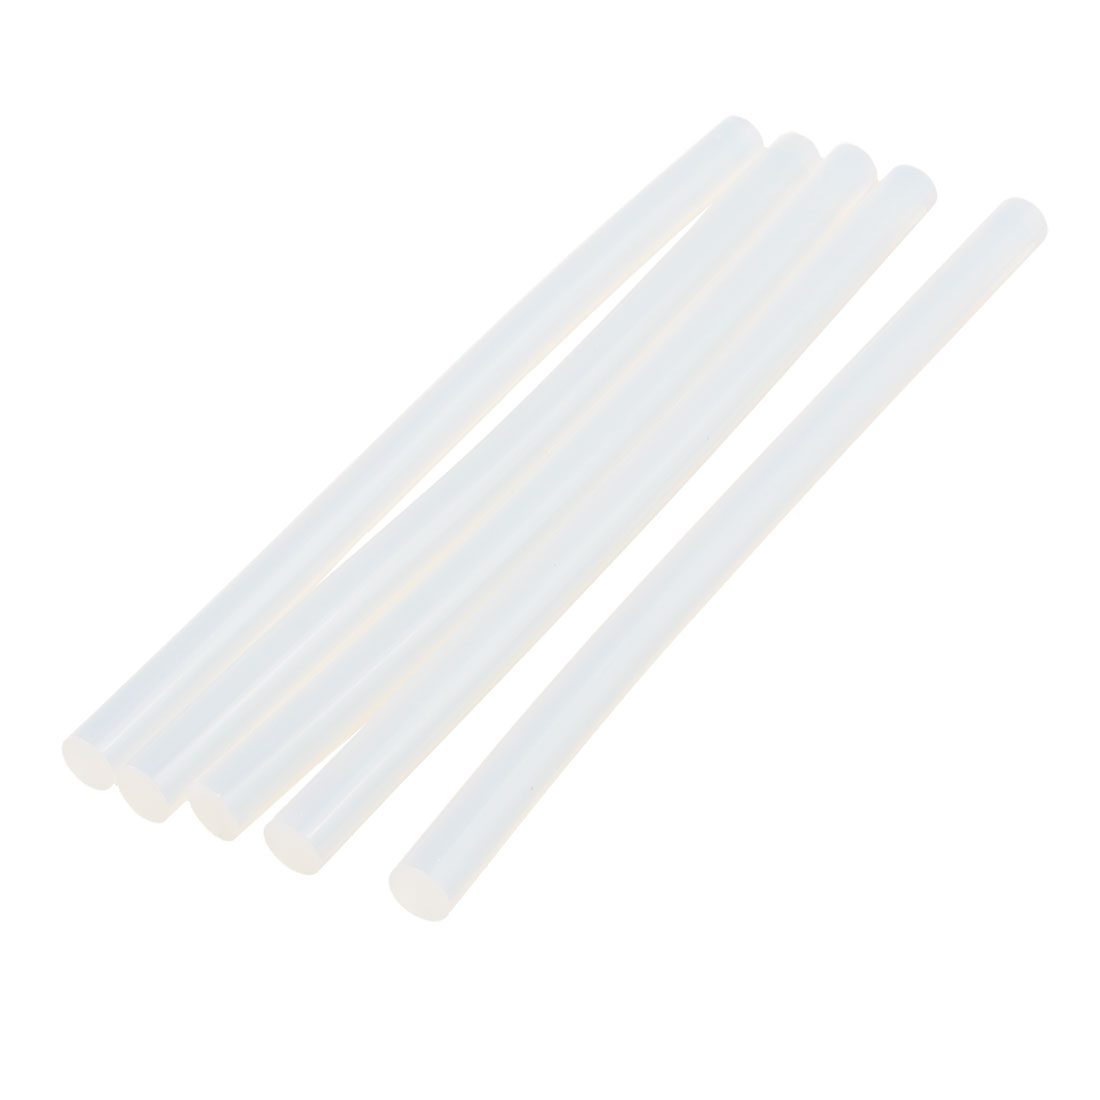 5 Pcs 11mm x 200mm Hot Melt Glue Adhesive Stick Clear for Electric Tool Heating Gun